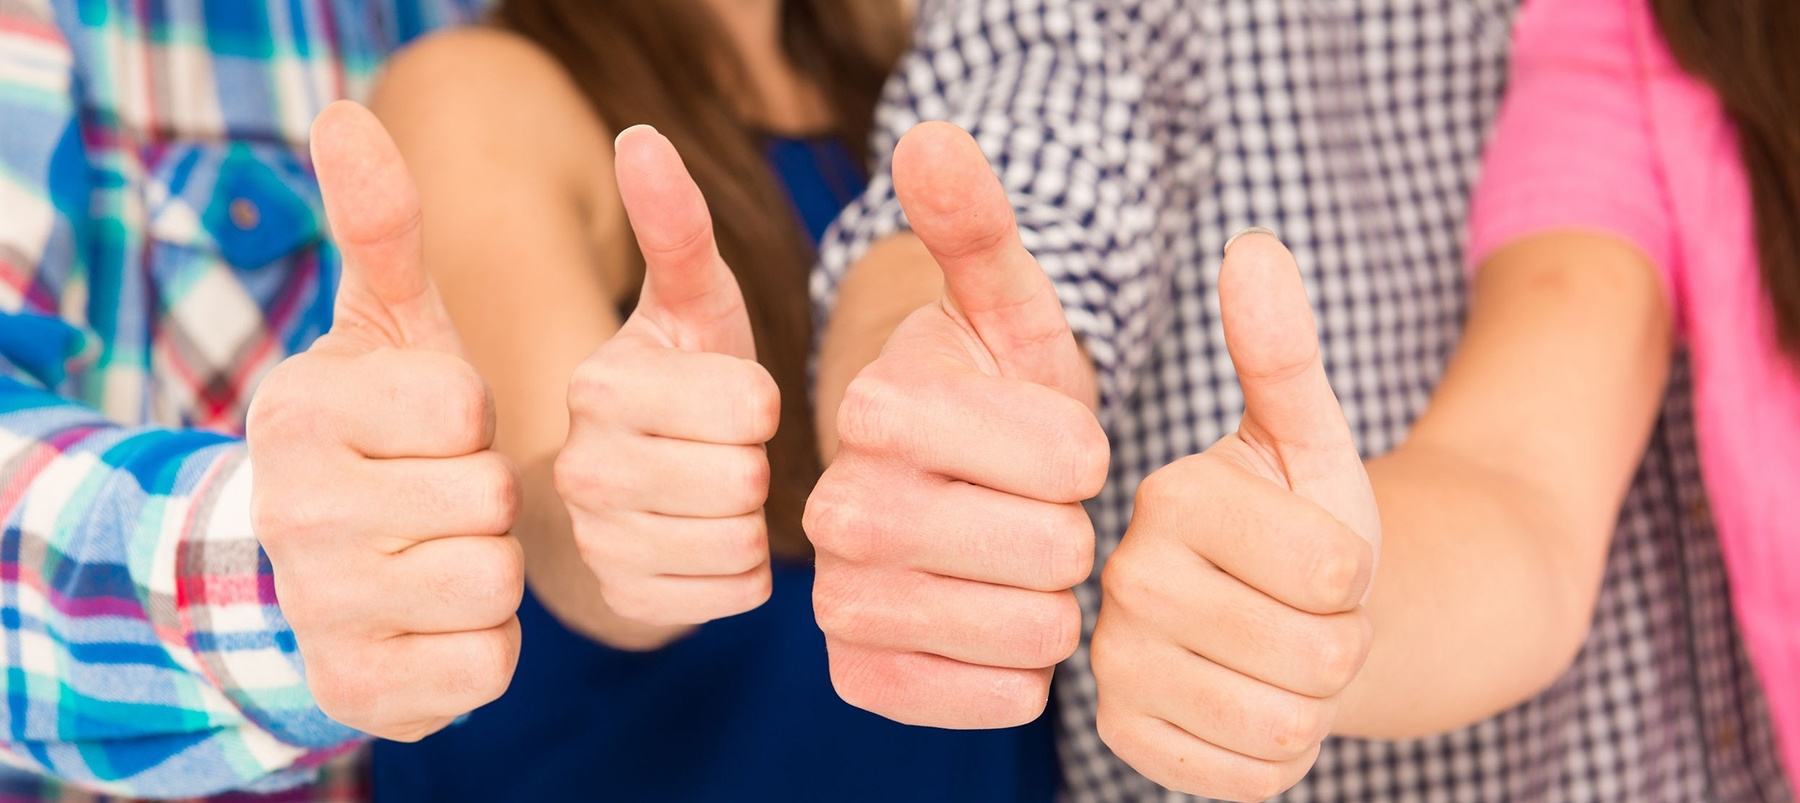 thumbs-up-1800px.jpg